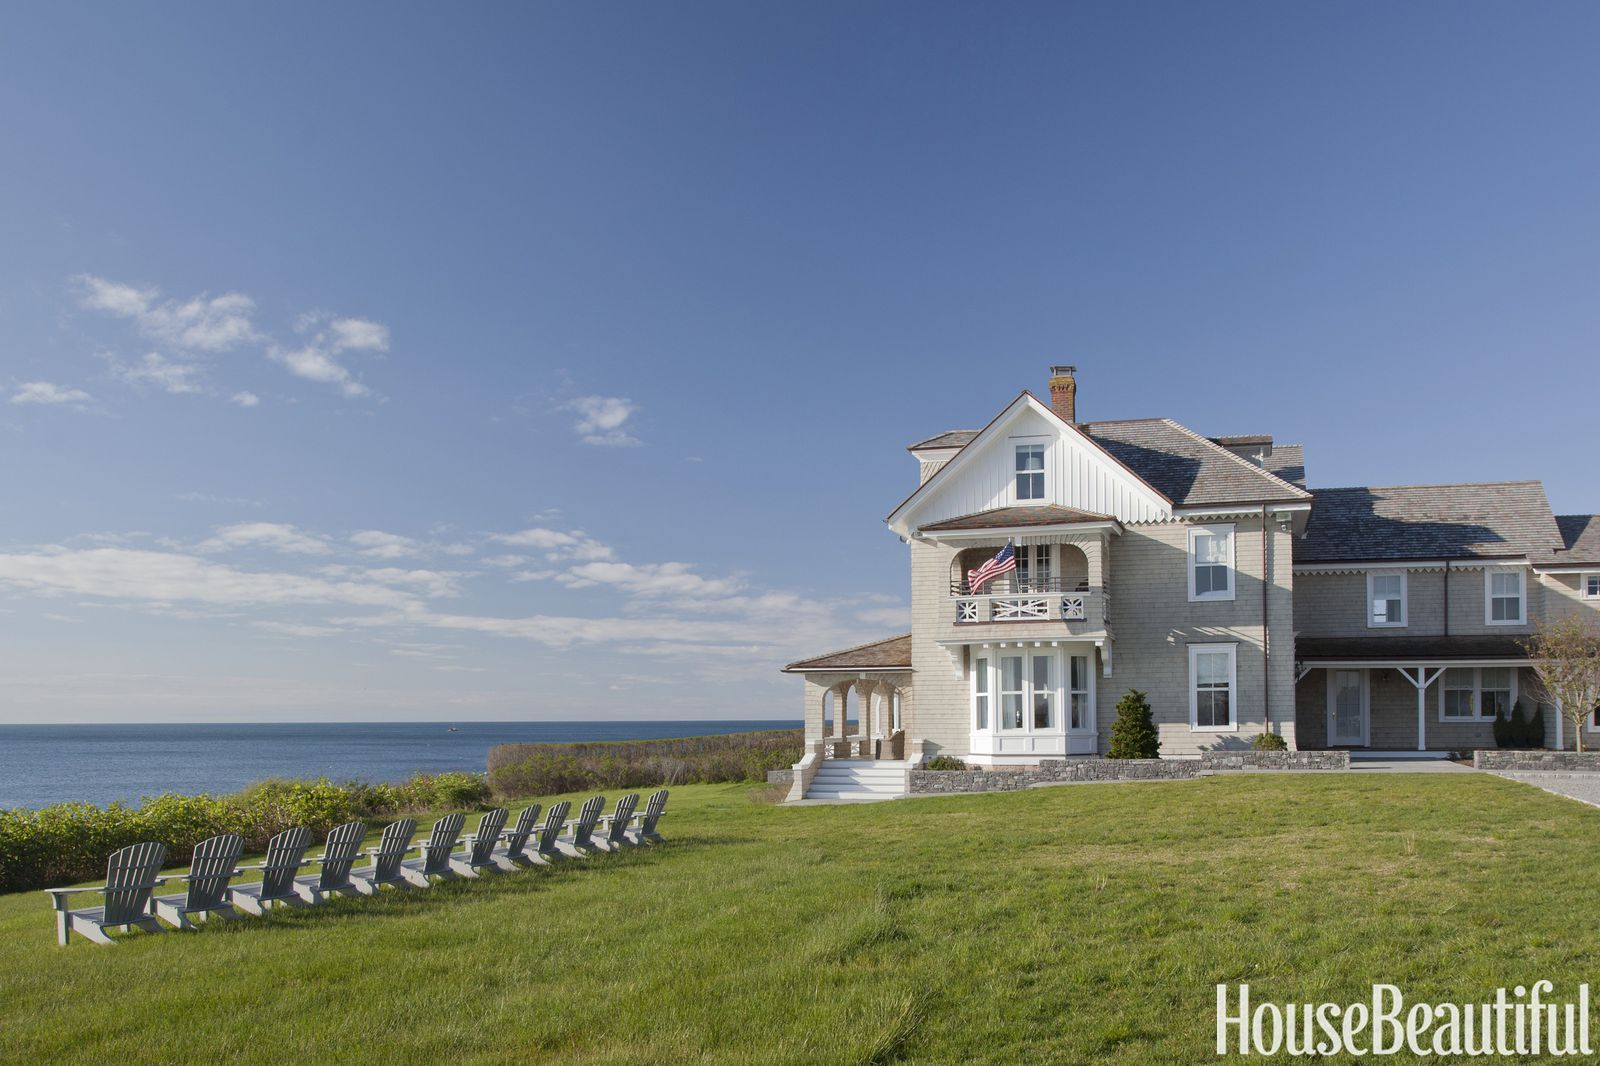 Luxurious Wallpaper Dresses Up This Victorian Beach House Beach House Style New England Homes Fancy Houses